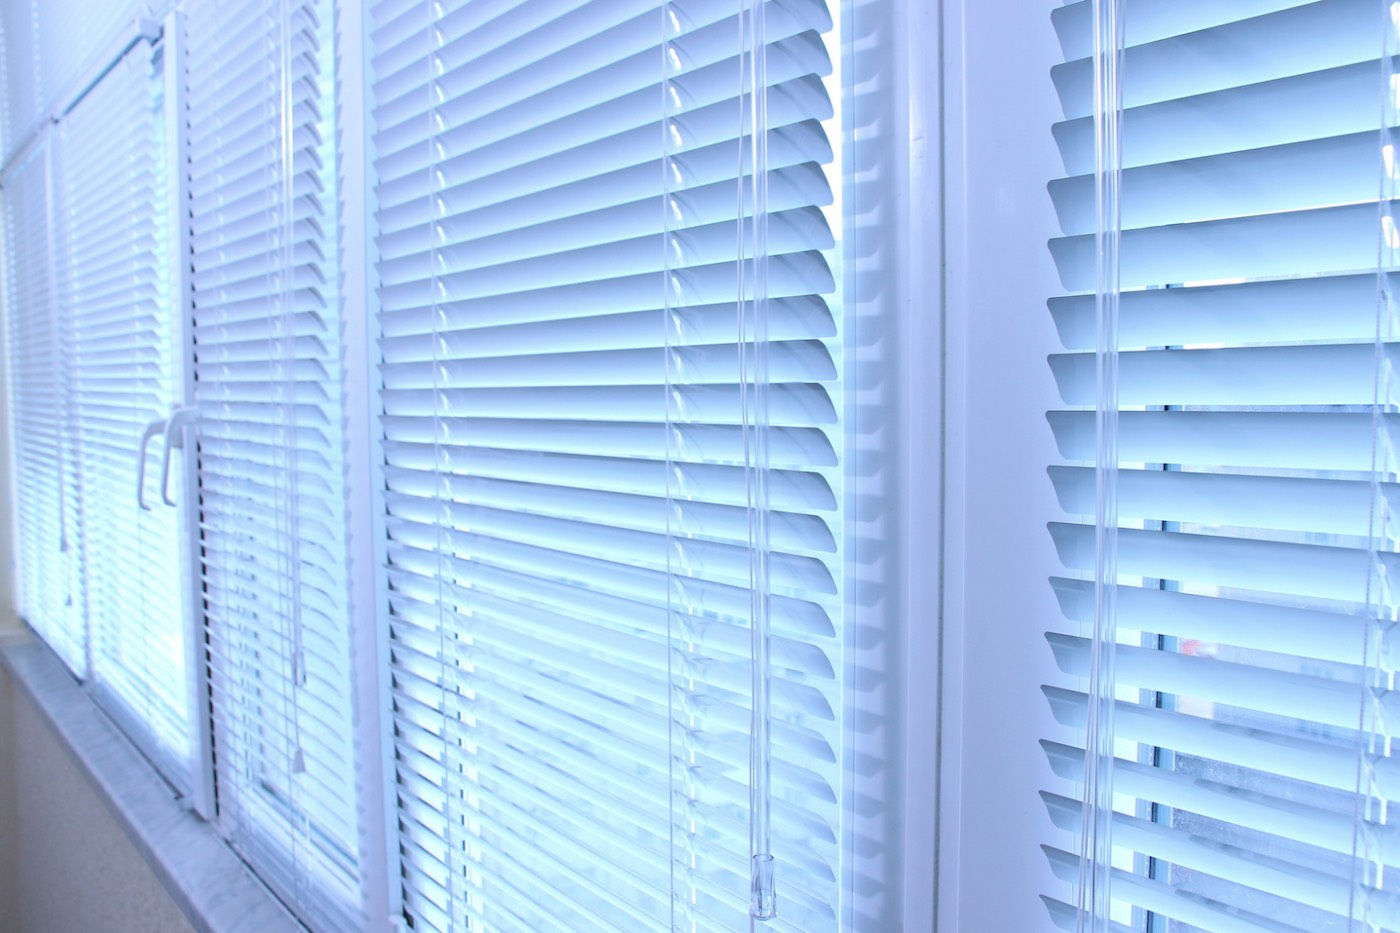 Why Do You Need Outdoor Blinds?